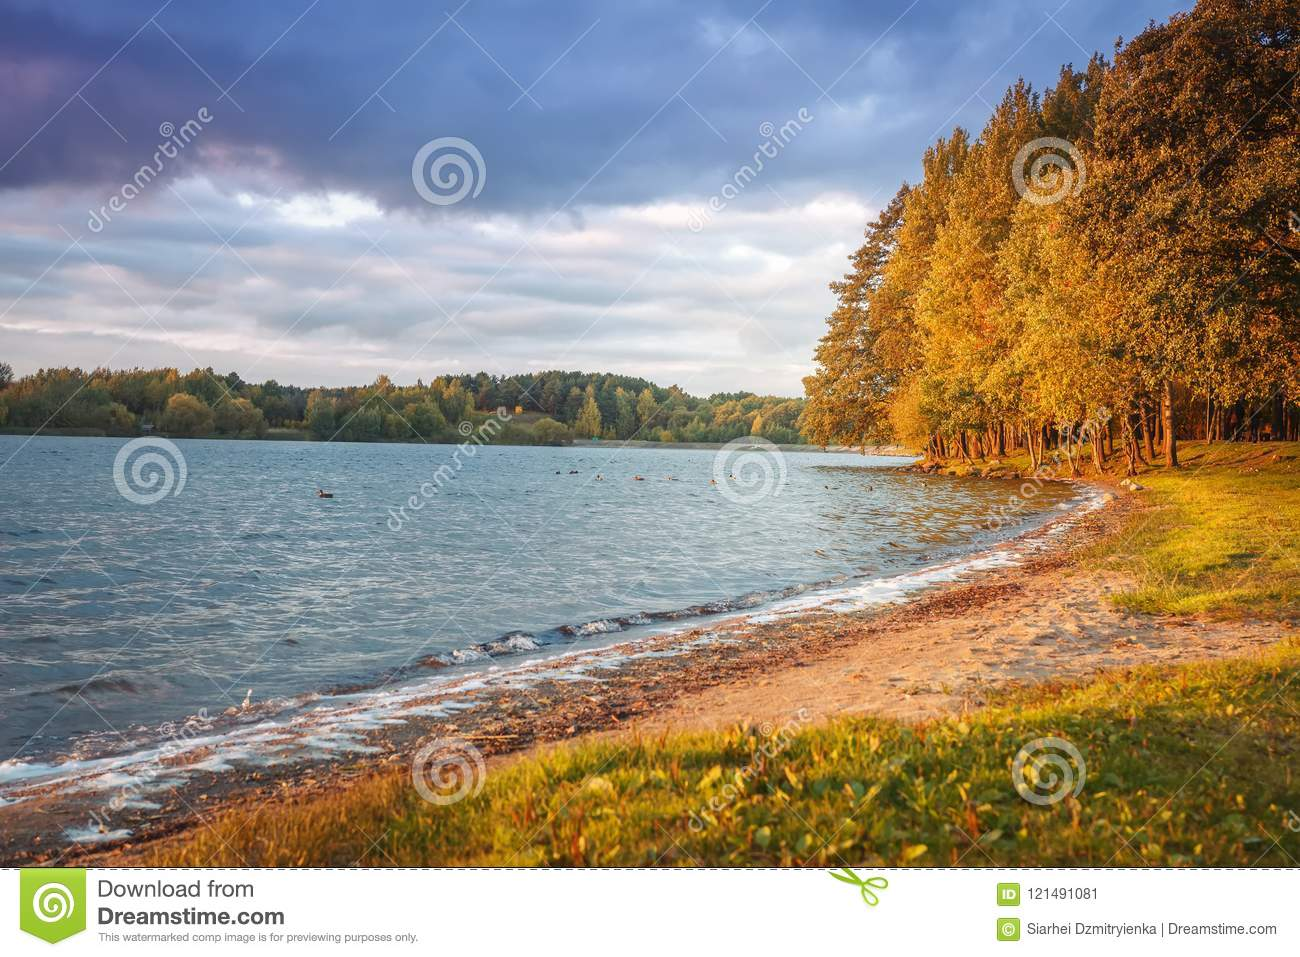 Autumn landscape of lake and colorful trees on shore in the evening. Yellow and red leaves on tree in october. Scenery of fall